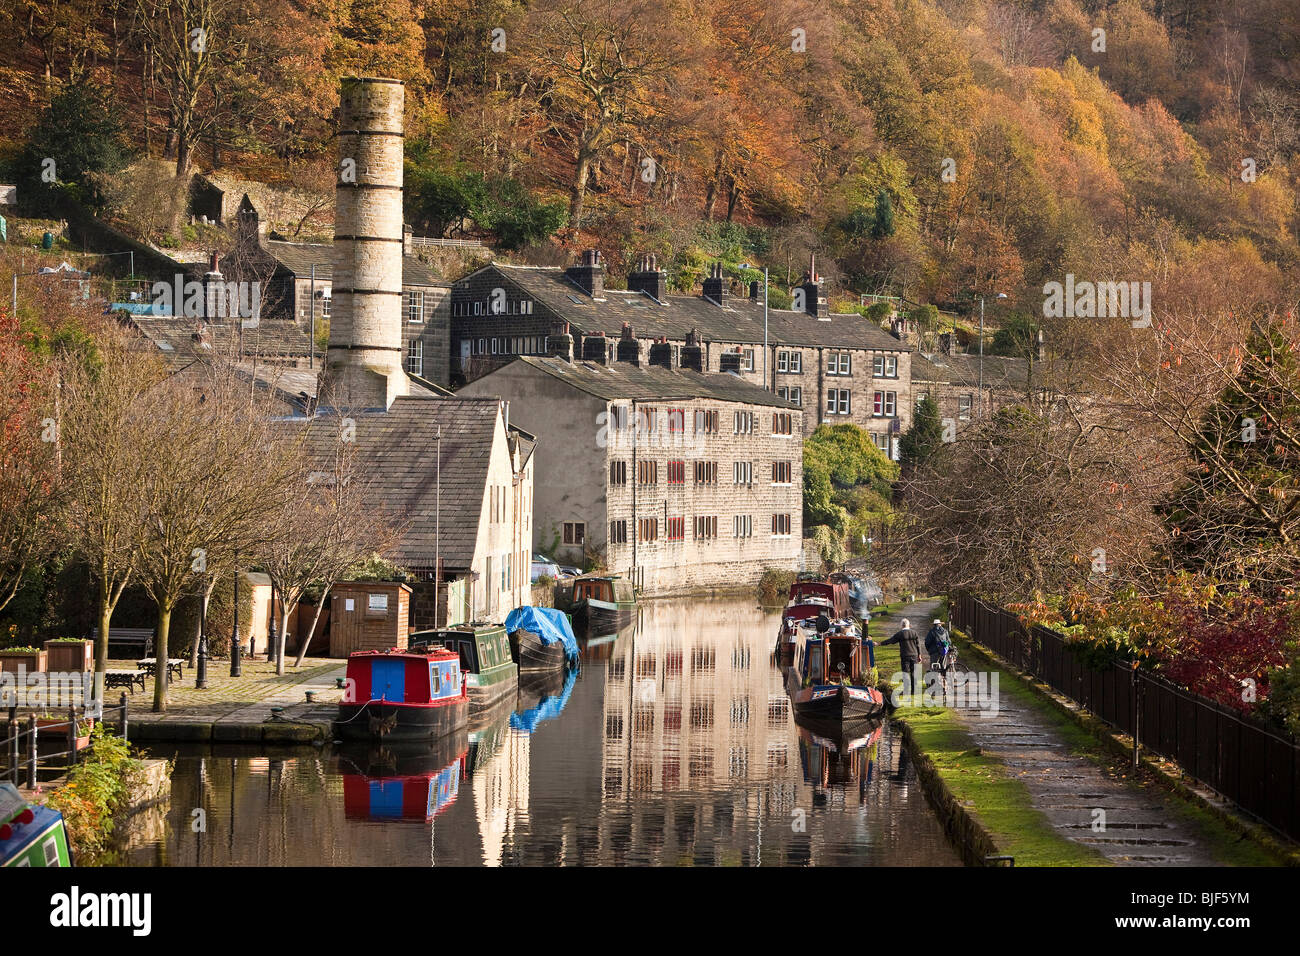 The Rochdale Canal, Hebden Bridge, Halifax, Yorkshire - Stock Image